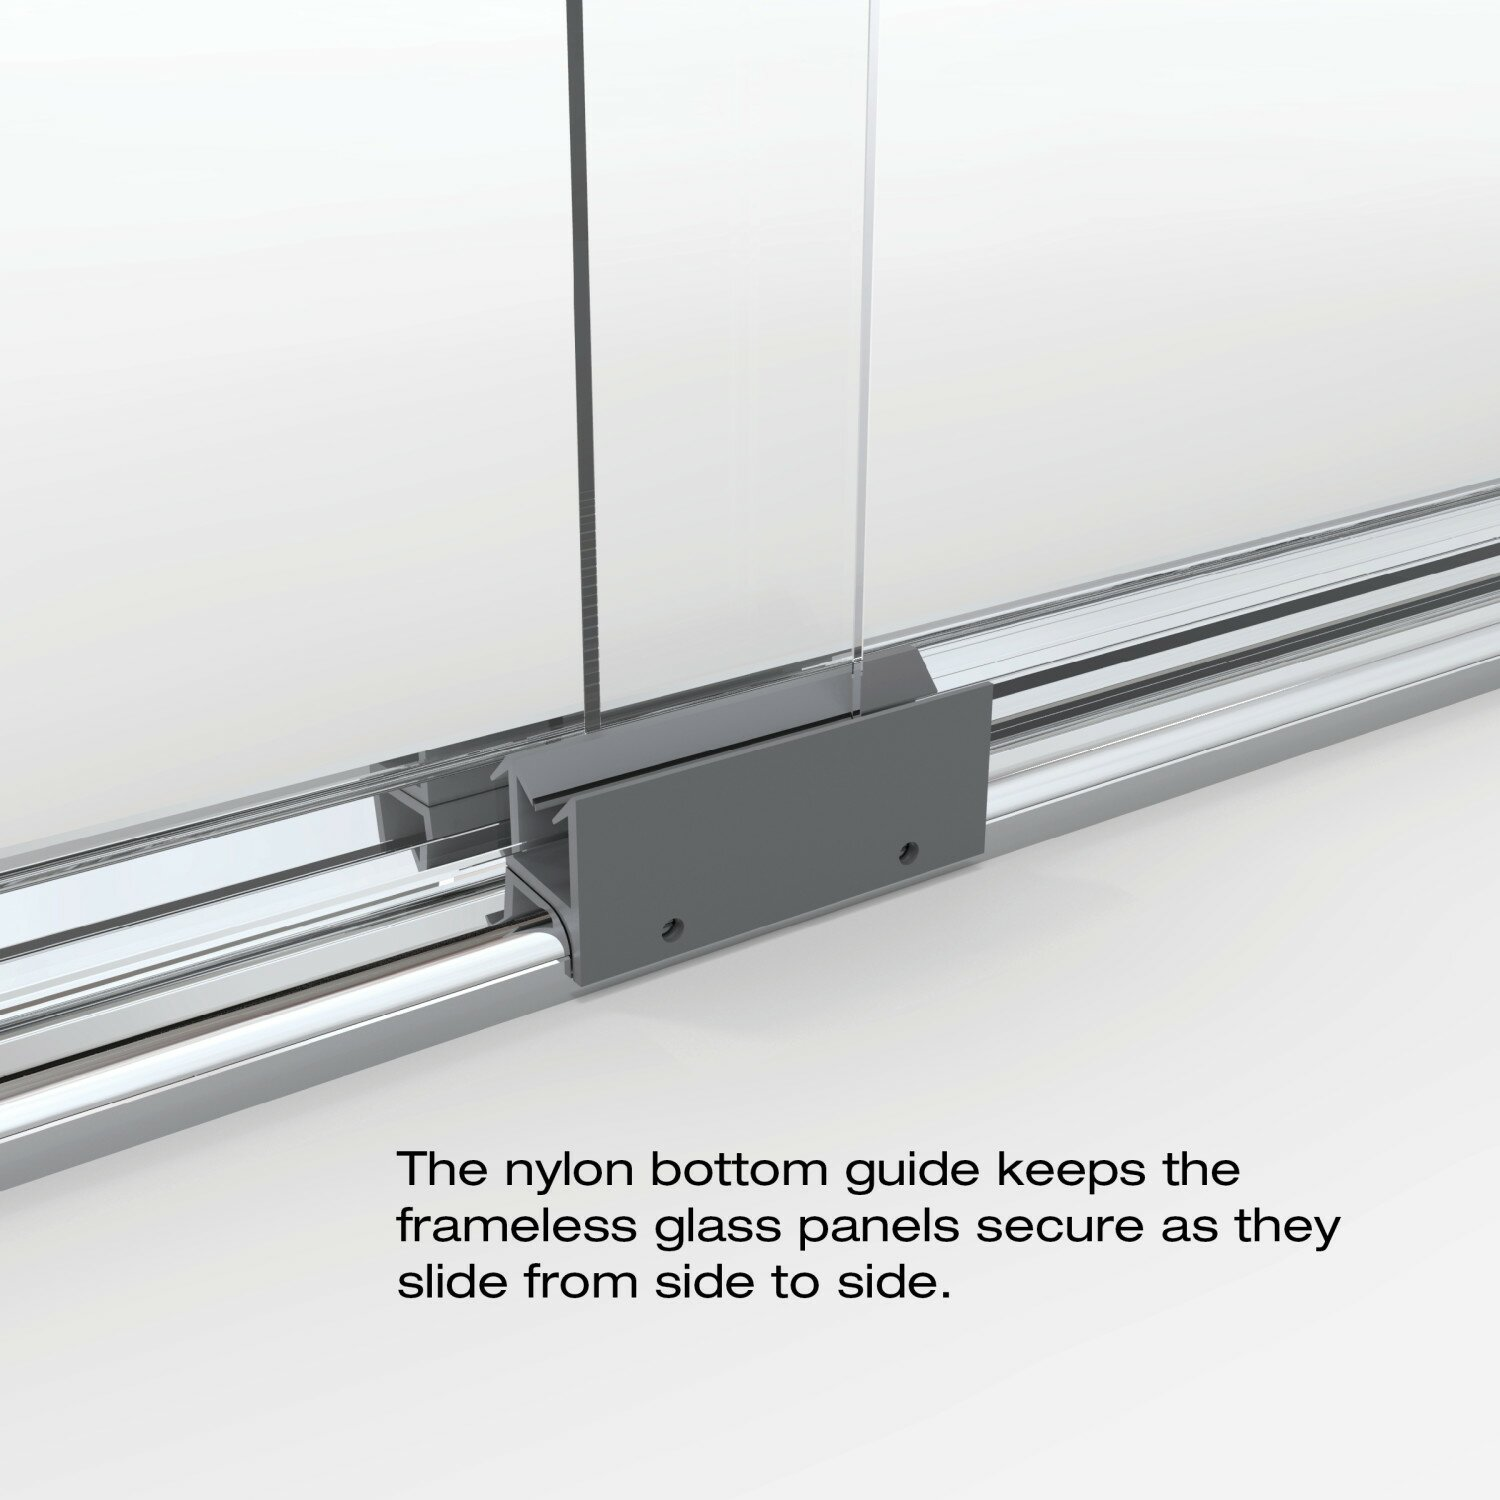 How to replace shower door bottom guide - Sliding Shower Door Bottom Guide Replacement Basco Classic 65 5 Quot X 47 Quot Frameless